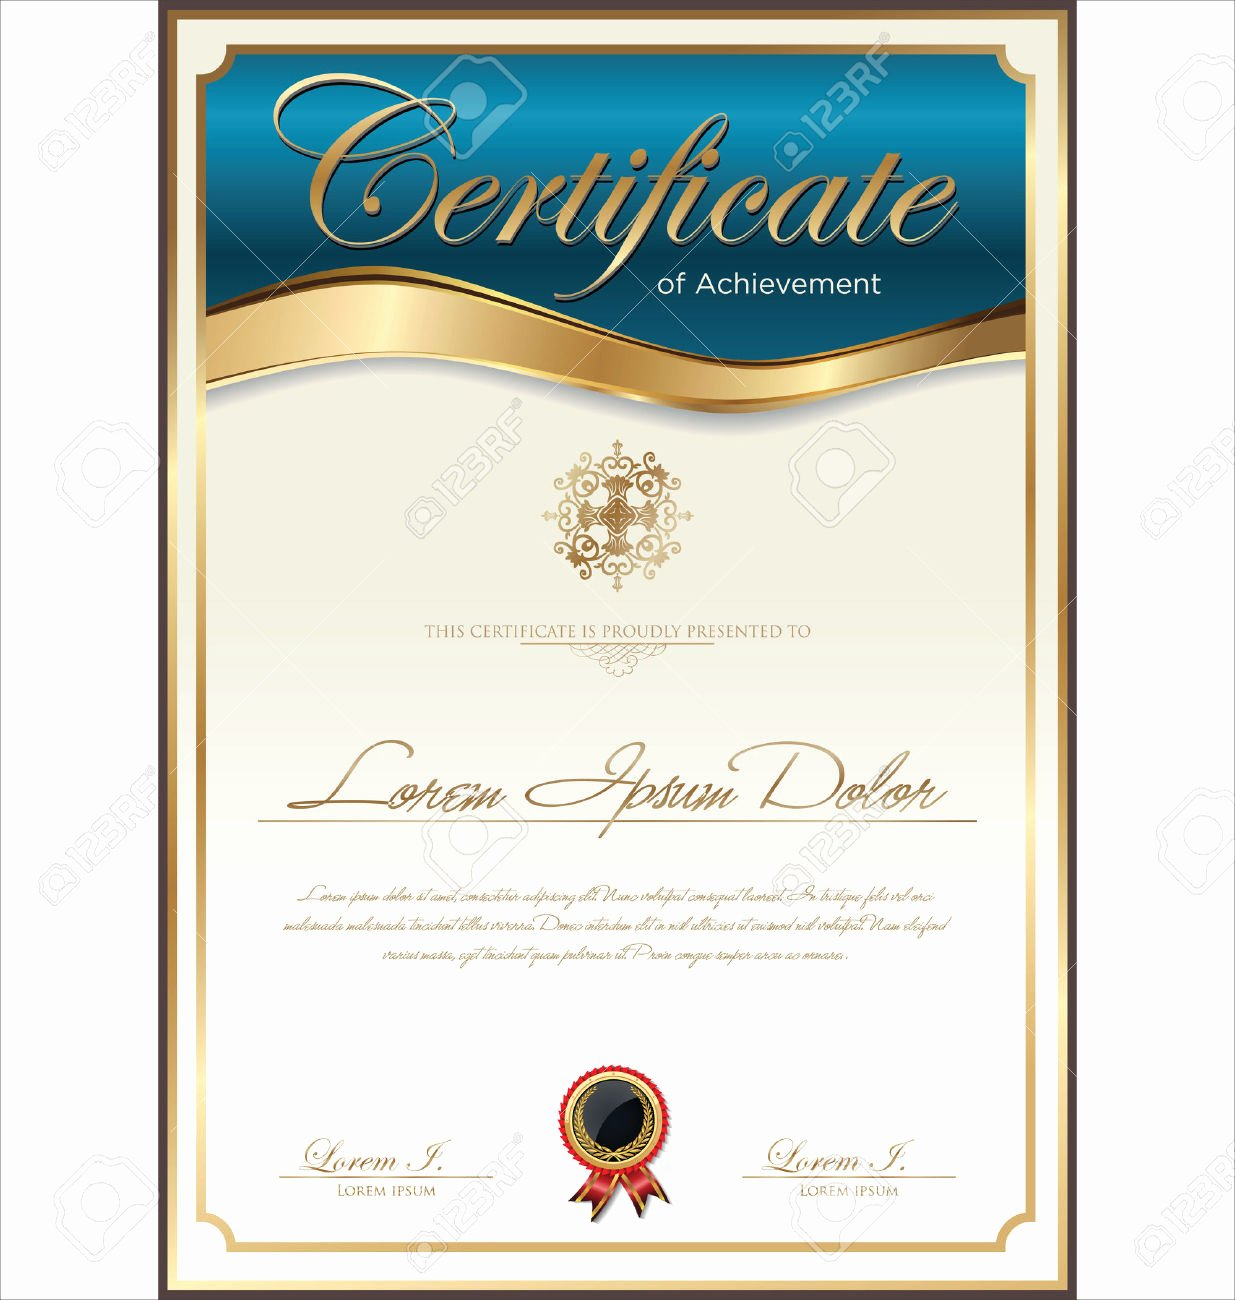 Certificate Templates Fotolip Rich Image and Wallpaper